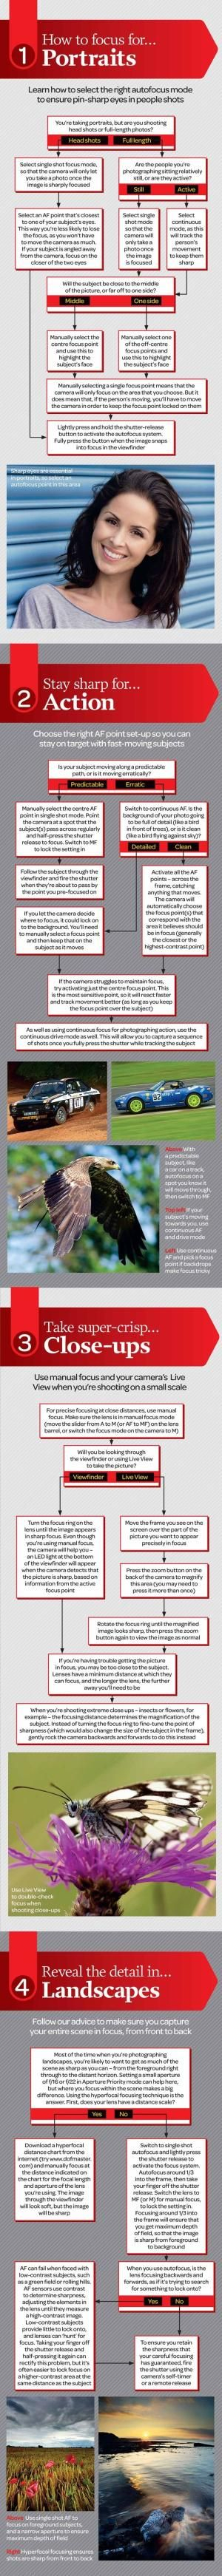 How to focus your camera for any subject or scene: free photography cheat sheet by ^ kristen ^